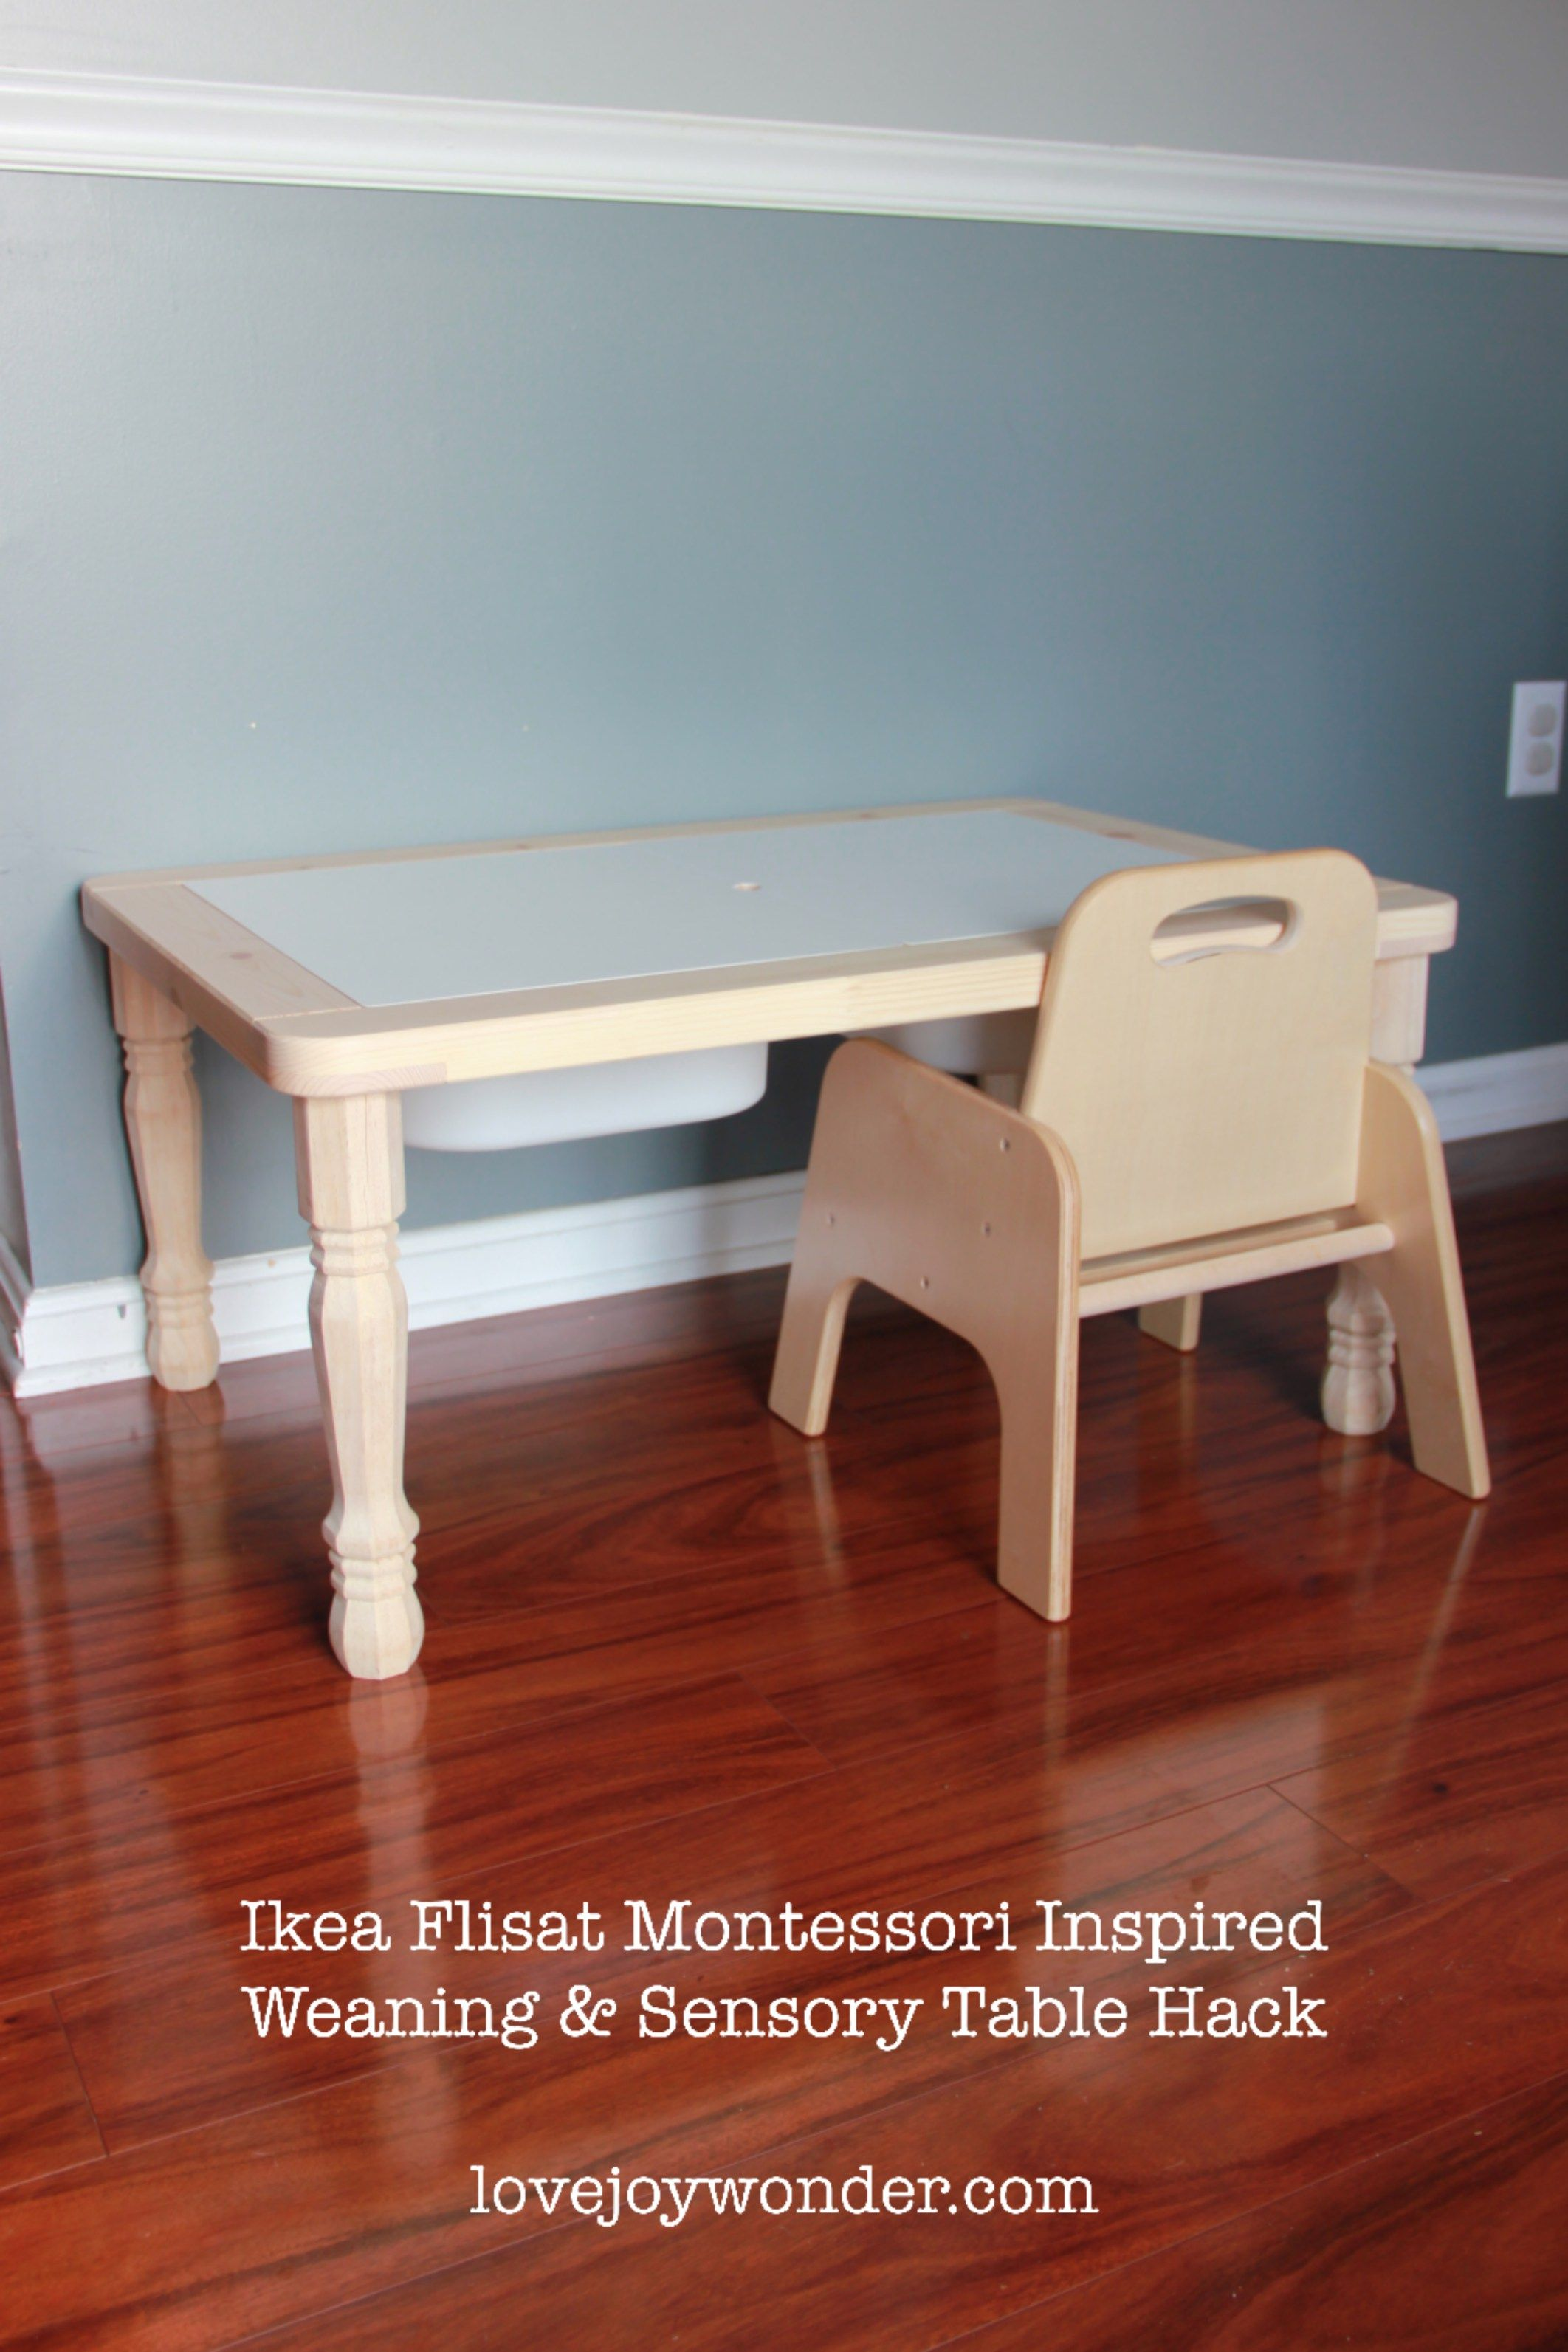 Ikea Flisat Children\'s Table Hack for a Montessori Weaning Table and ...